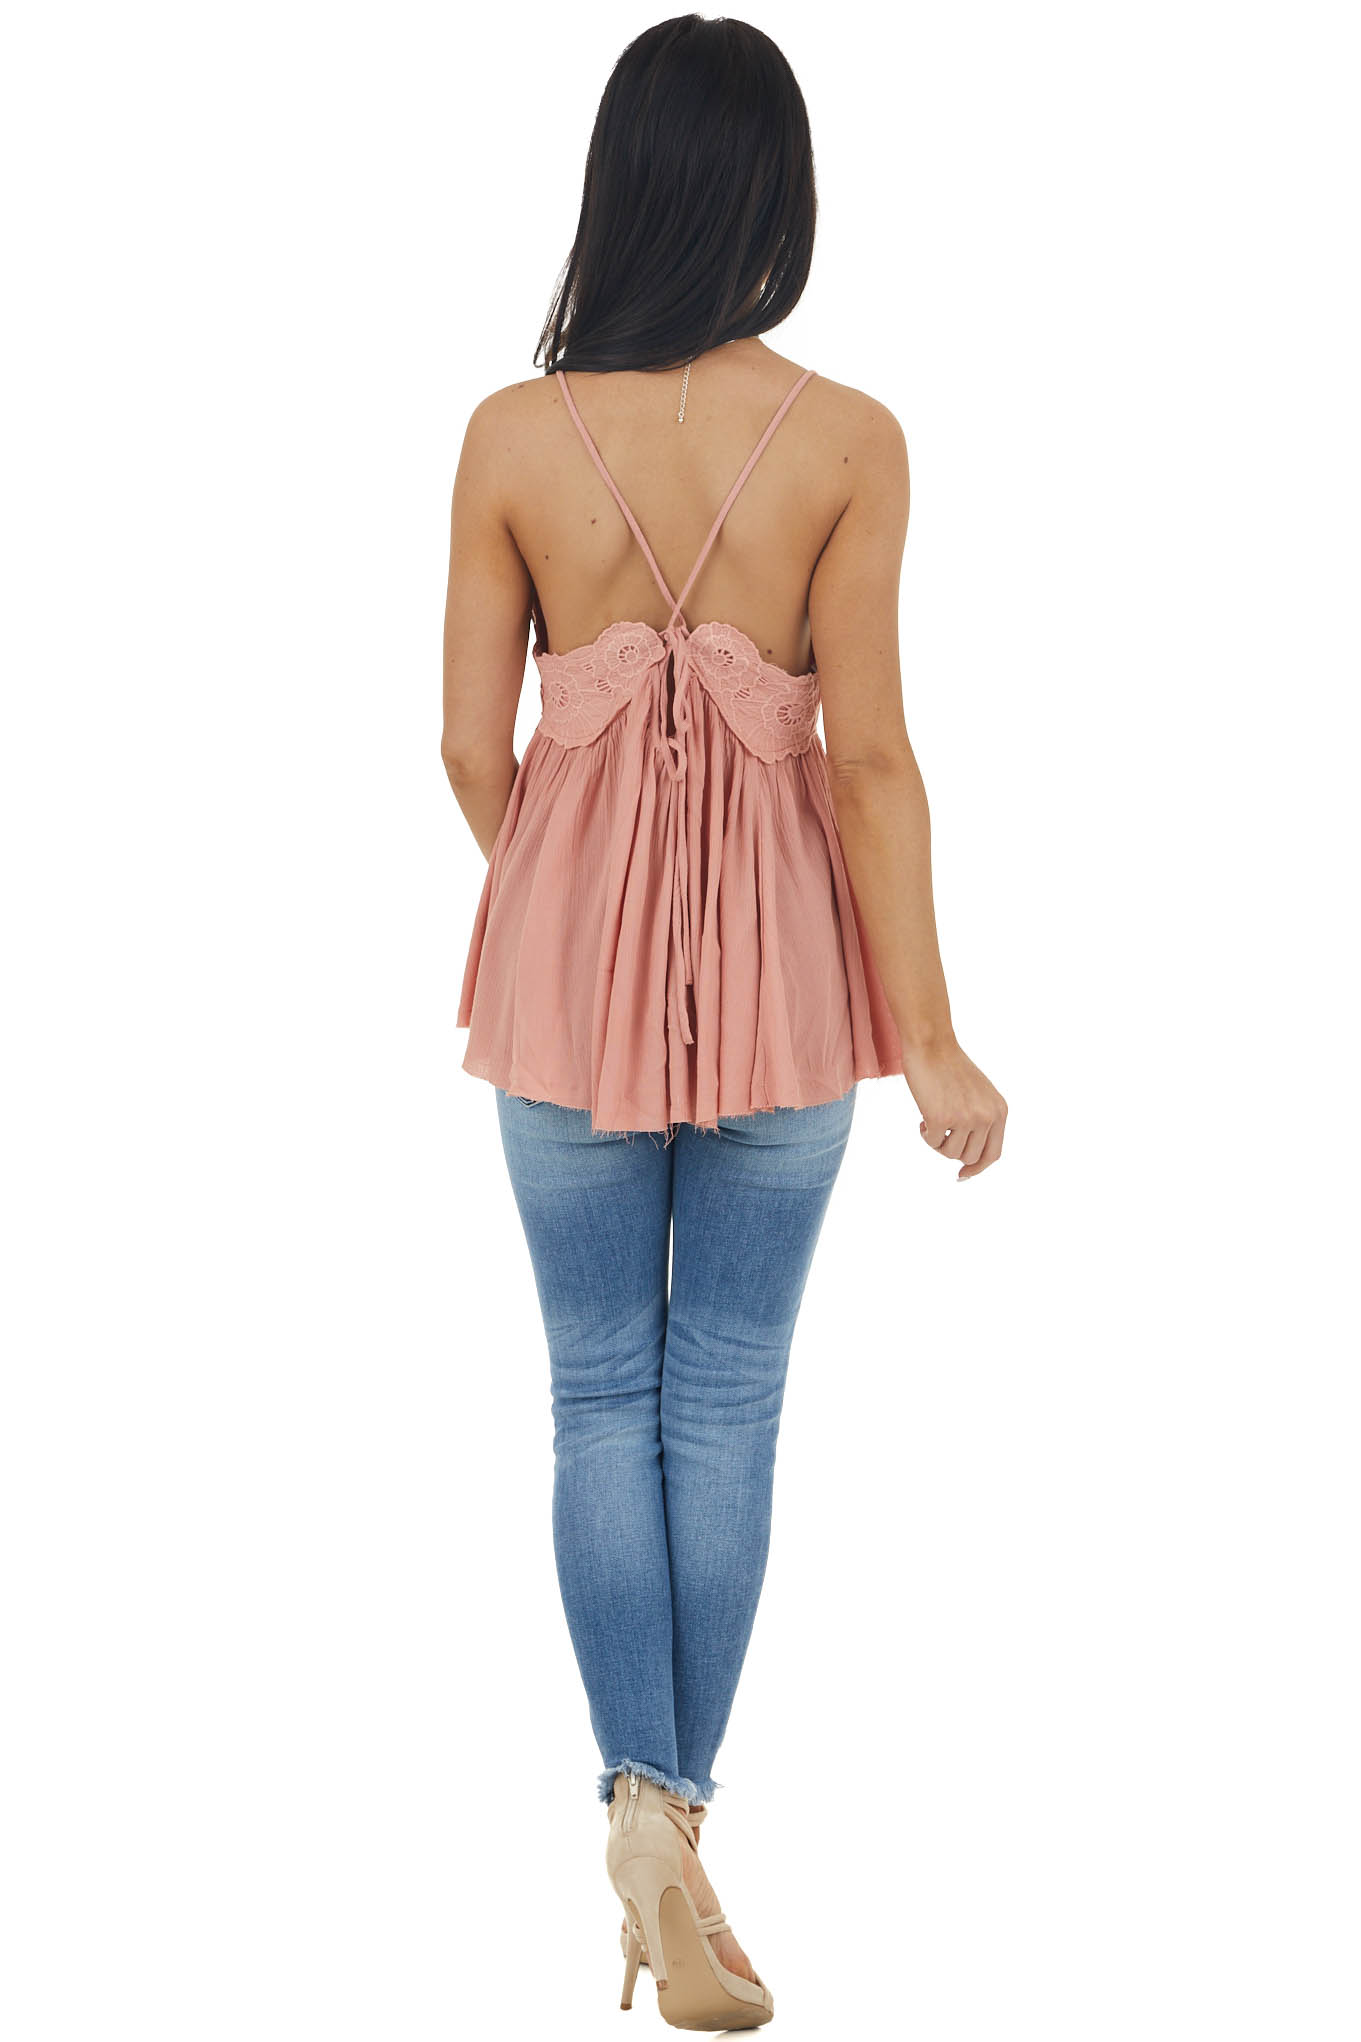 Peach Lace Sleeveless Babydoll Top with Crisscross Straps